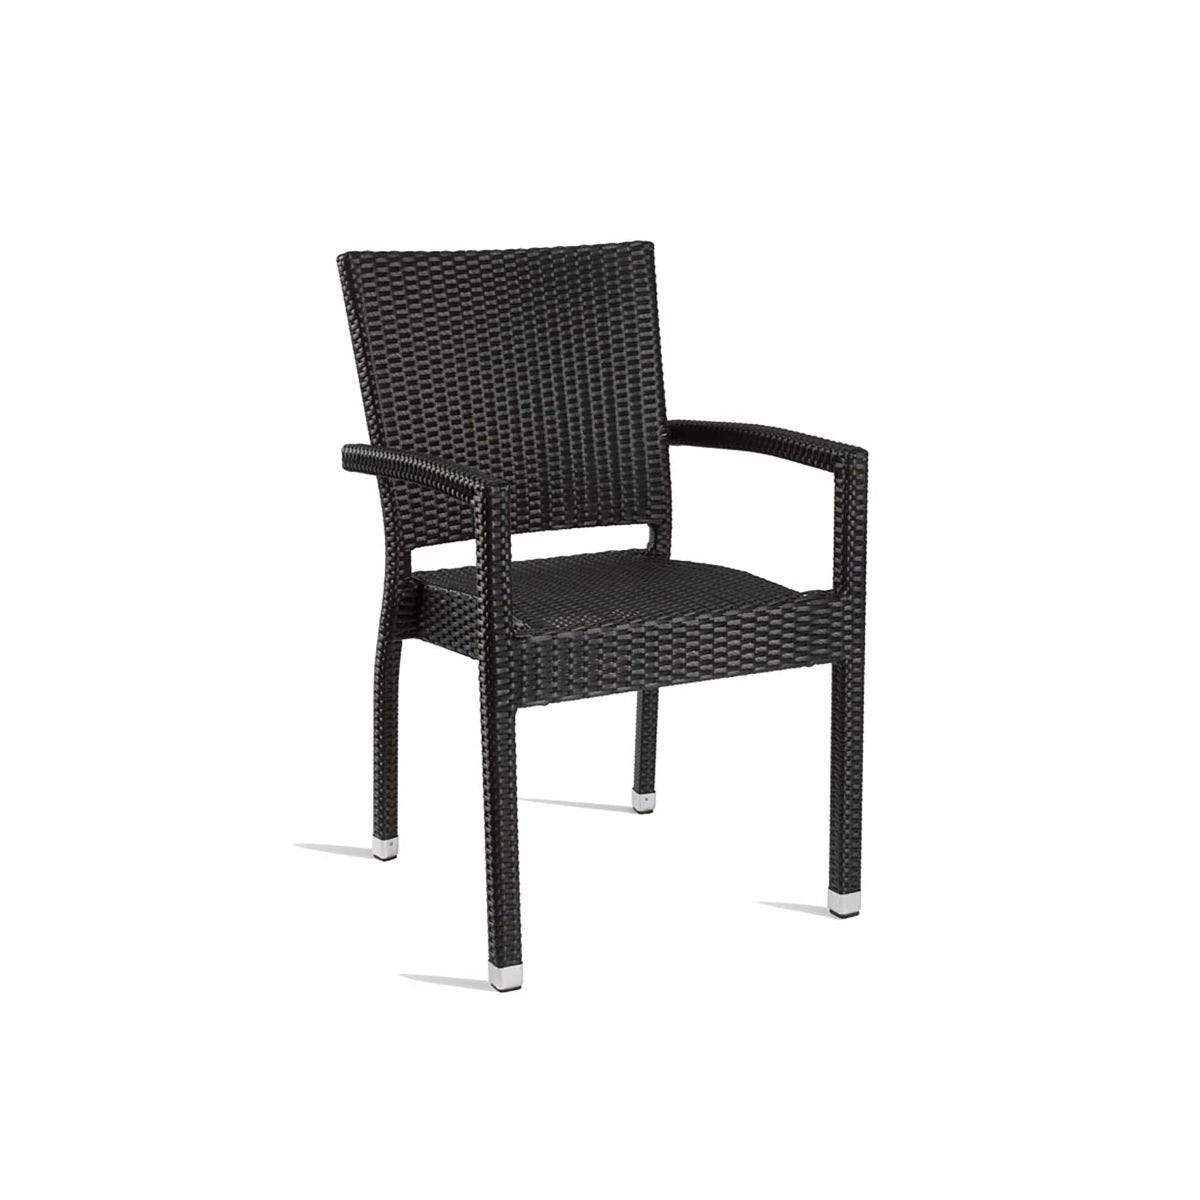 Stag Outdoor Arm Chair, Black